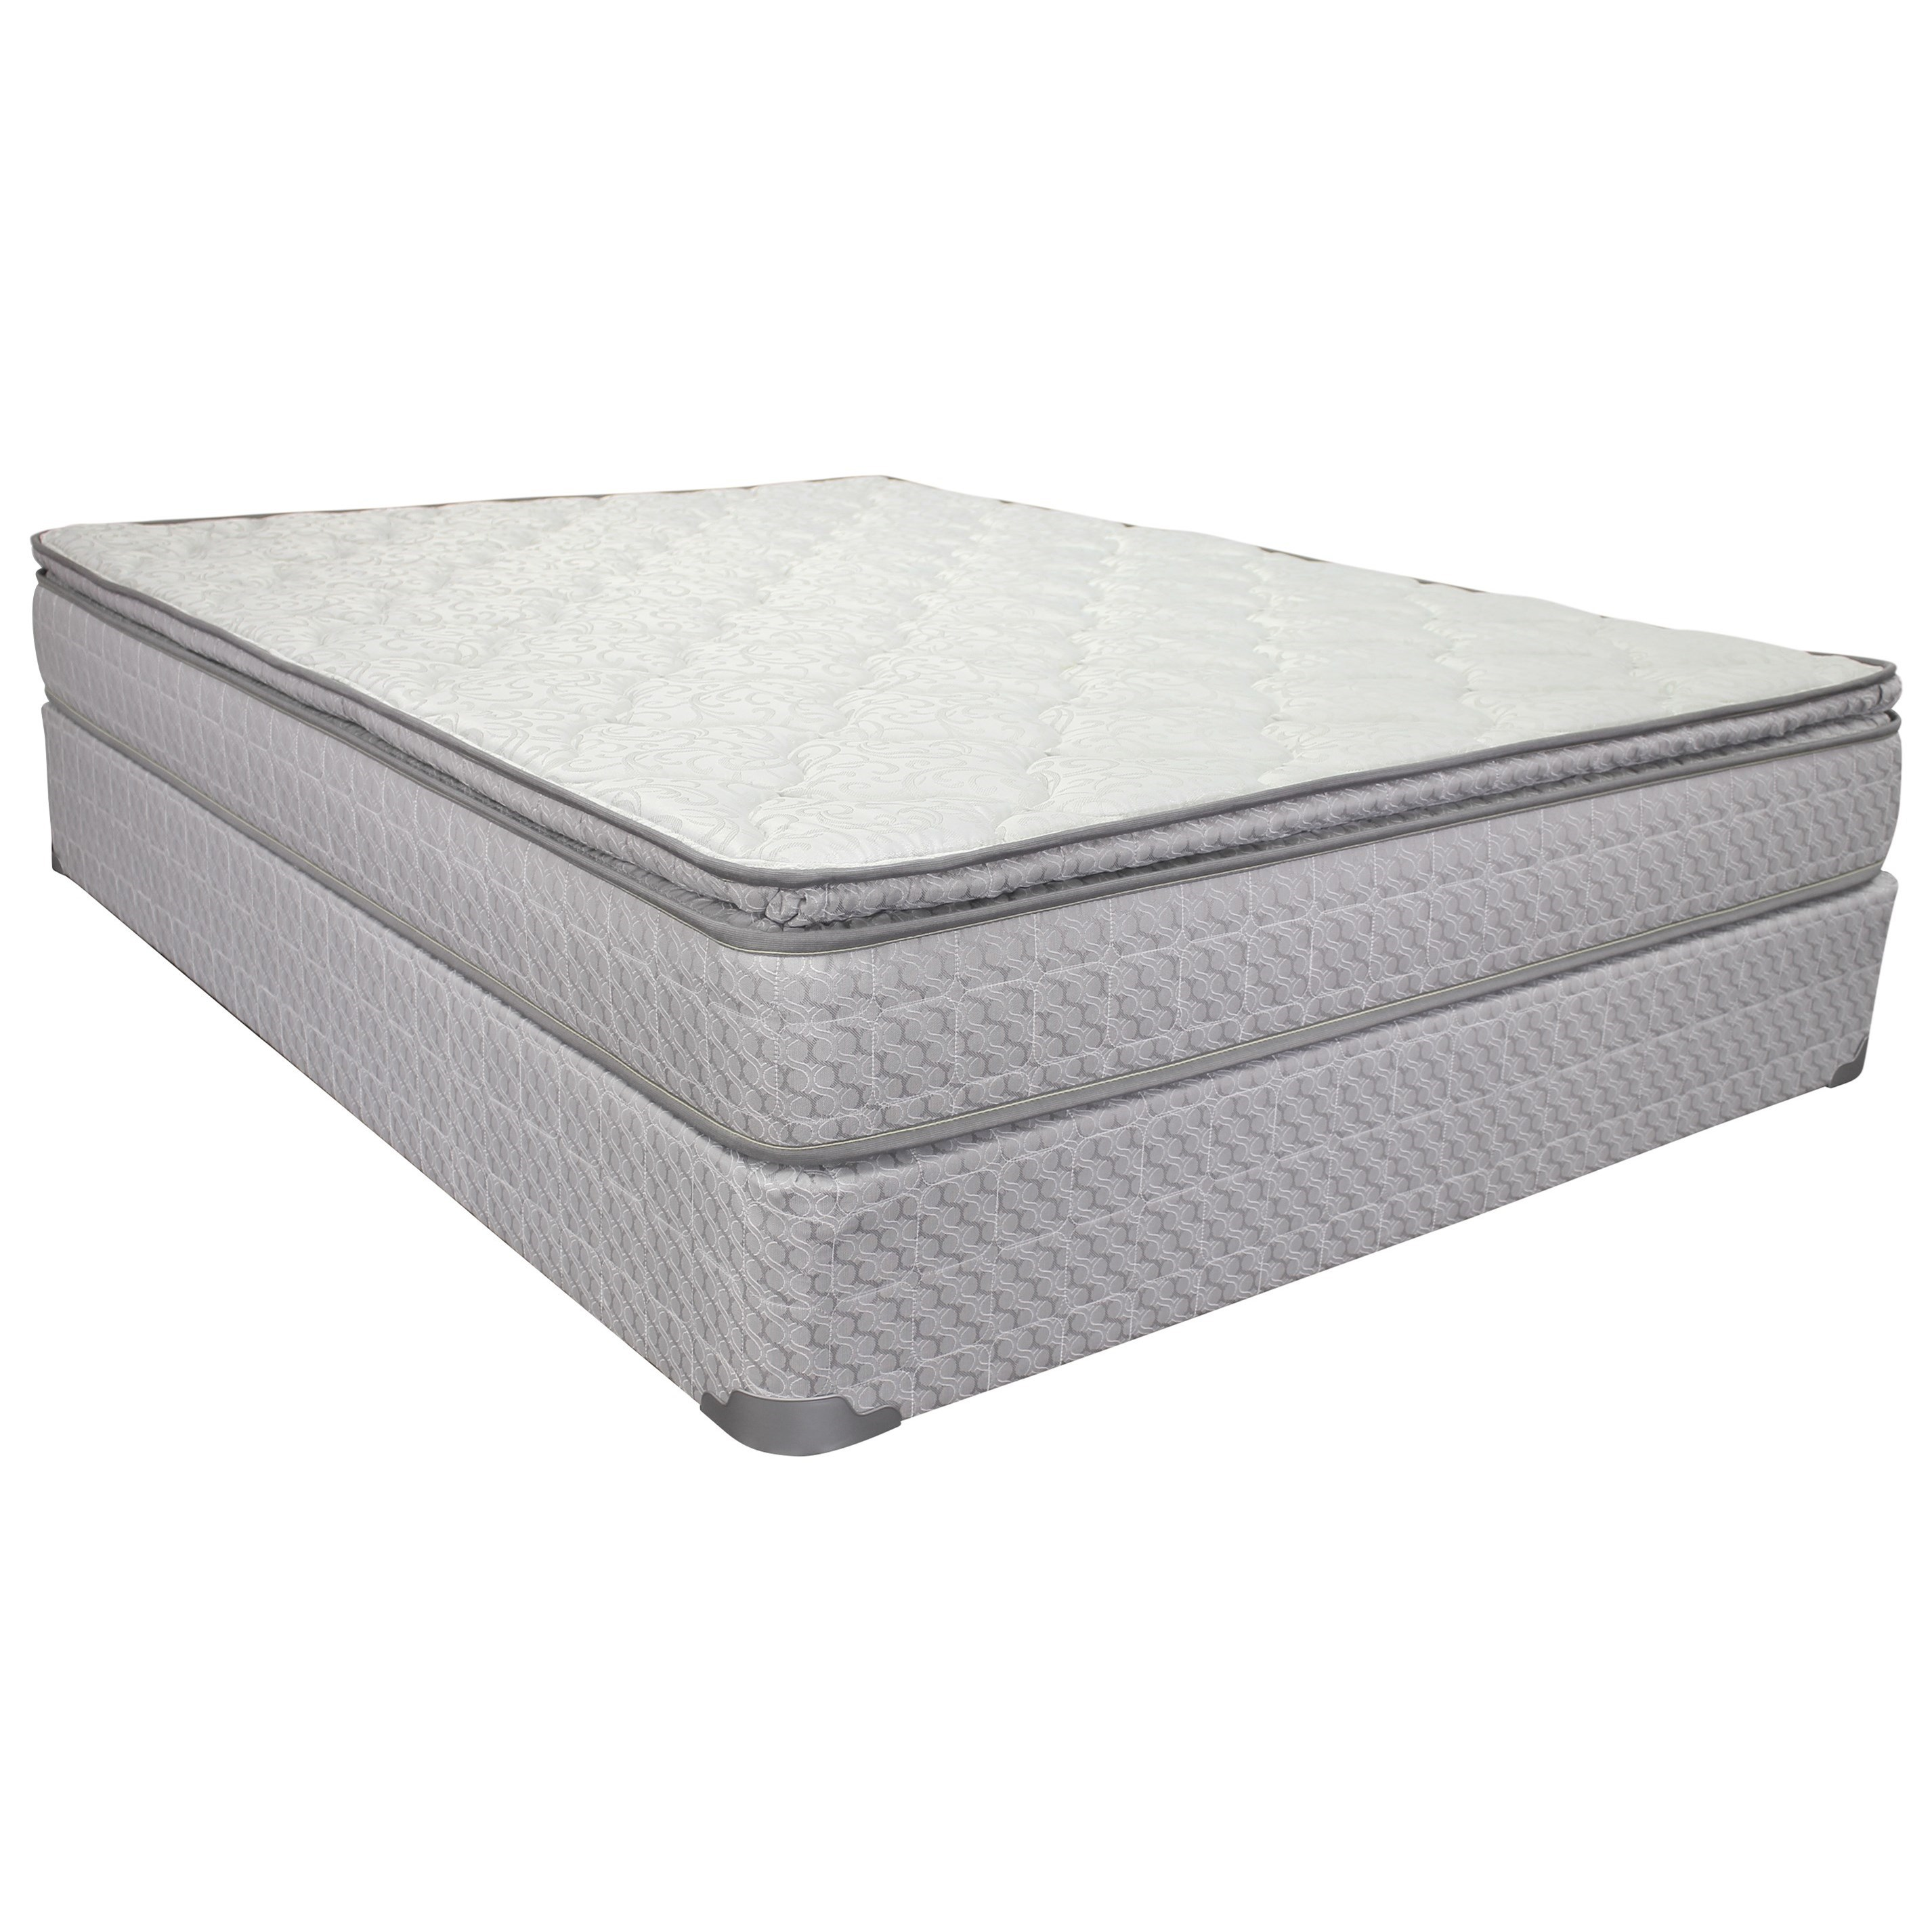 "Corsicana 1030 Broyton Pillowtop King 9 1/2"" Pillowtop Innerspring Matt Set - Item Number: 1030-K+2xWoodfndtn-TXL"